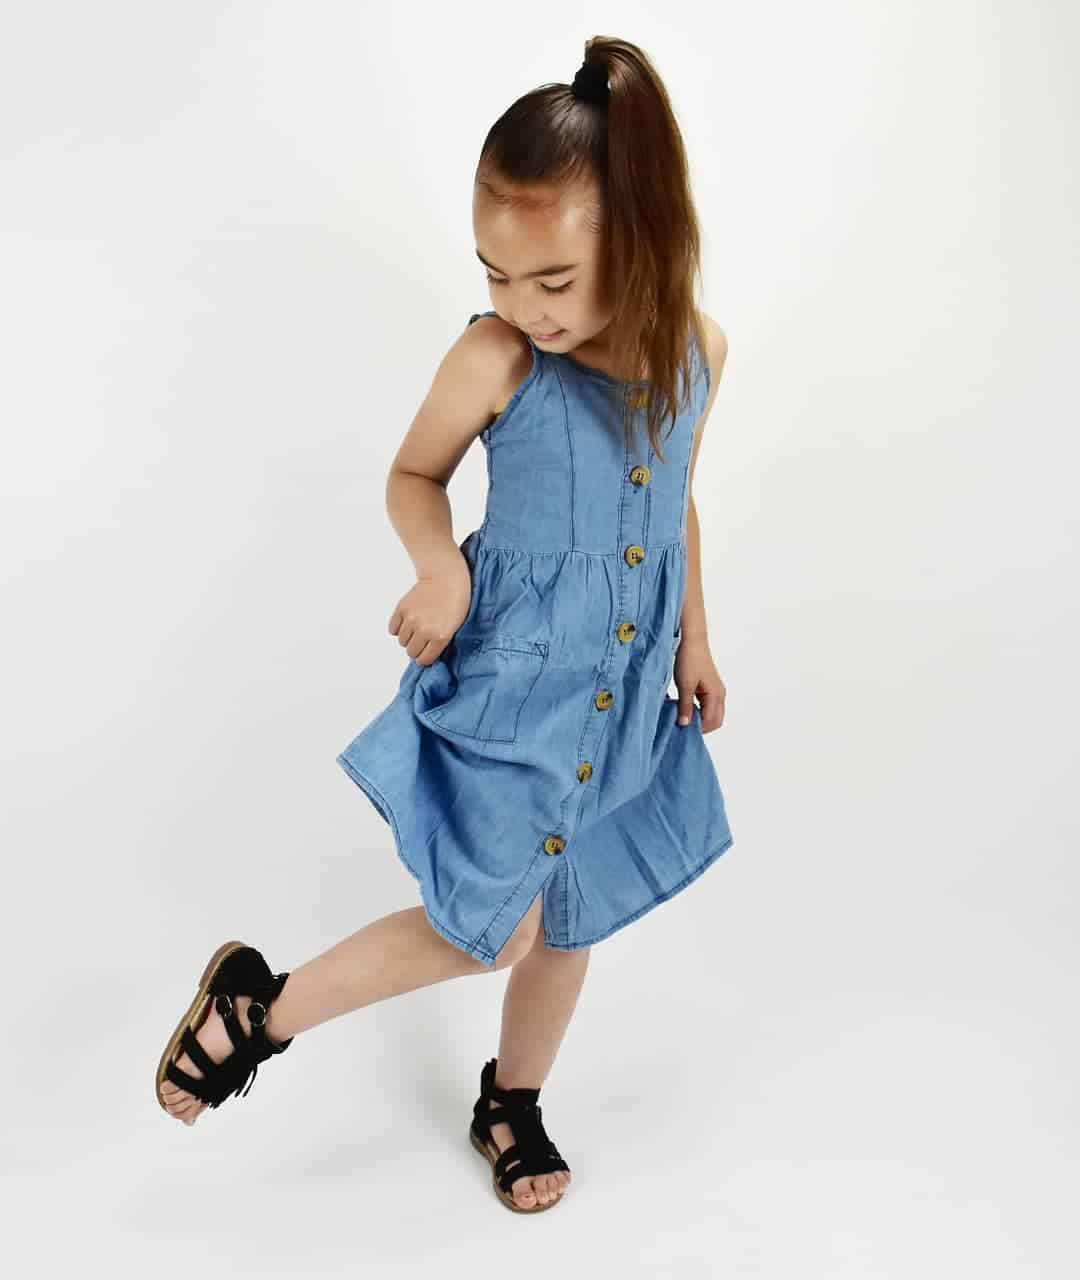 top 7 kids clothes 2020 trends insights on baby girl and